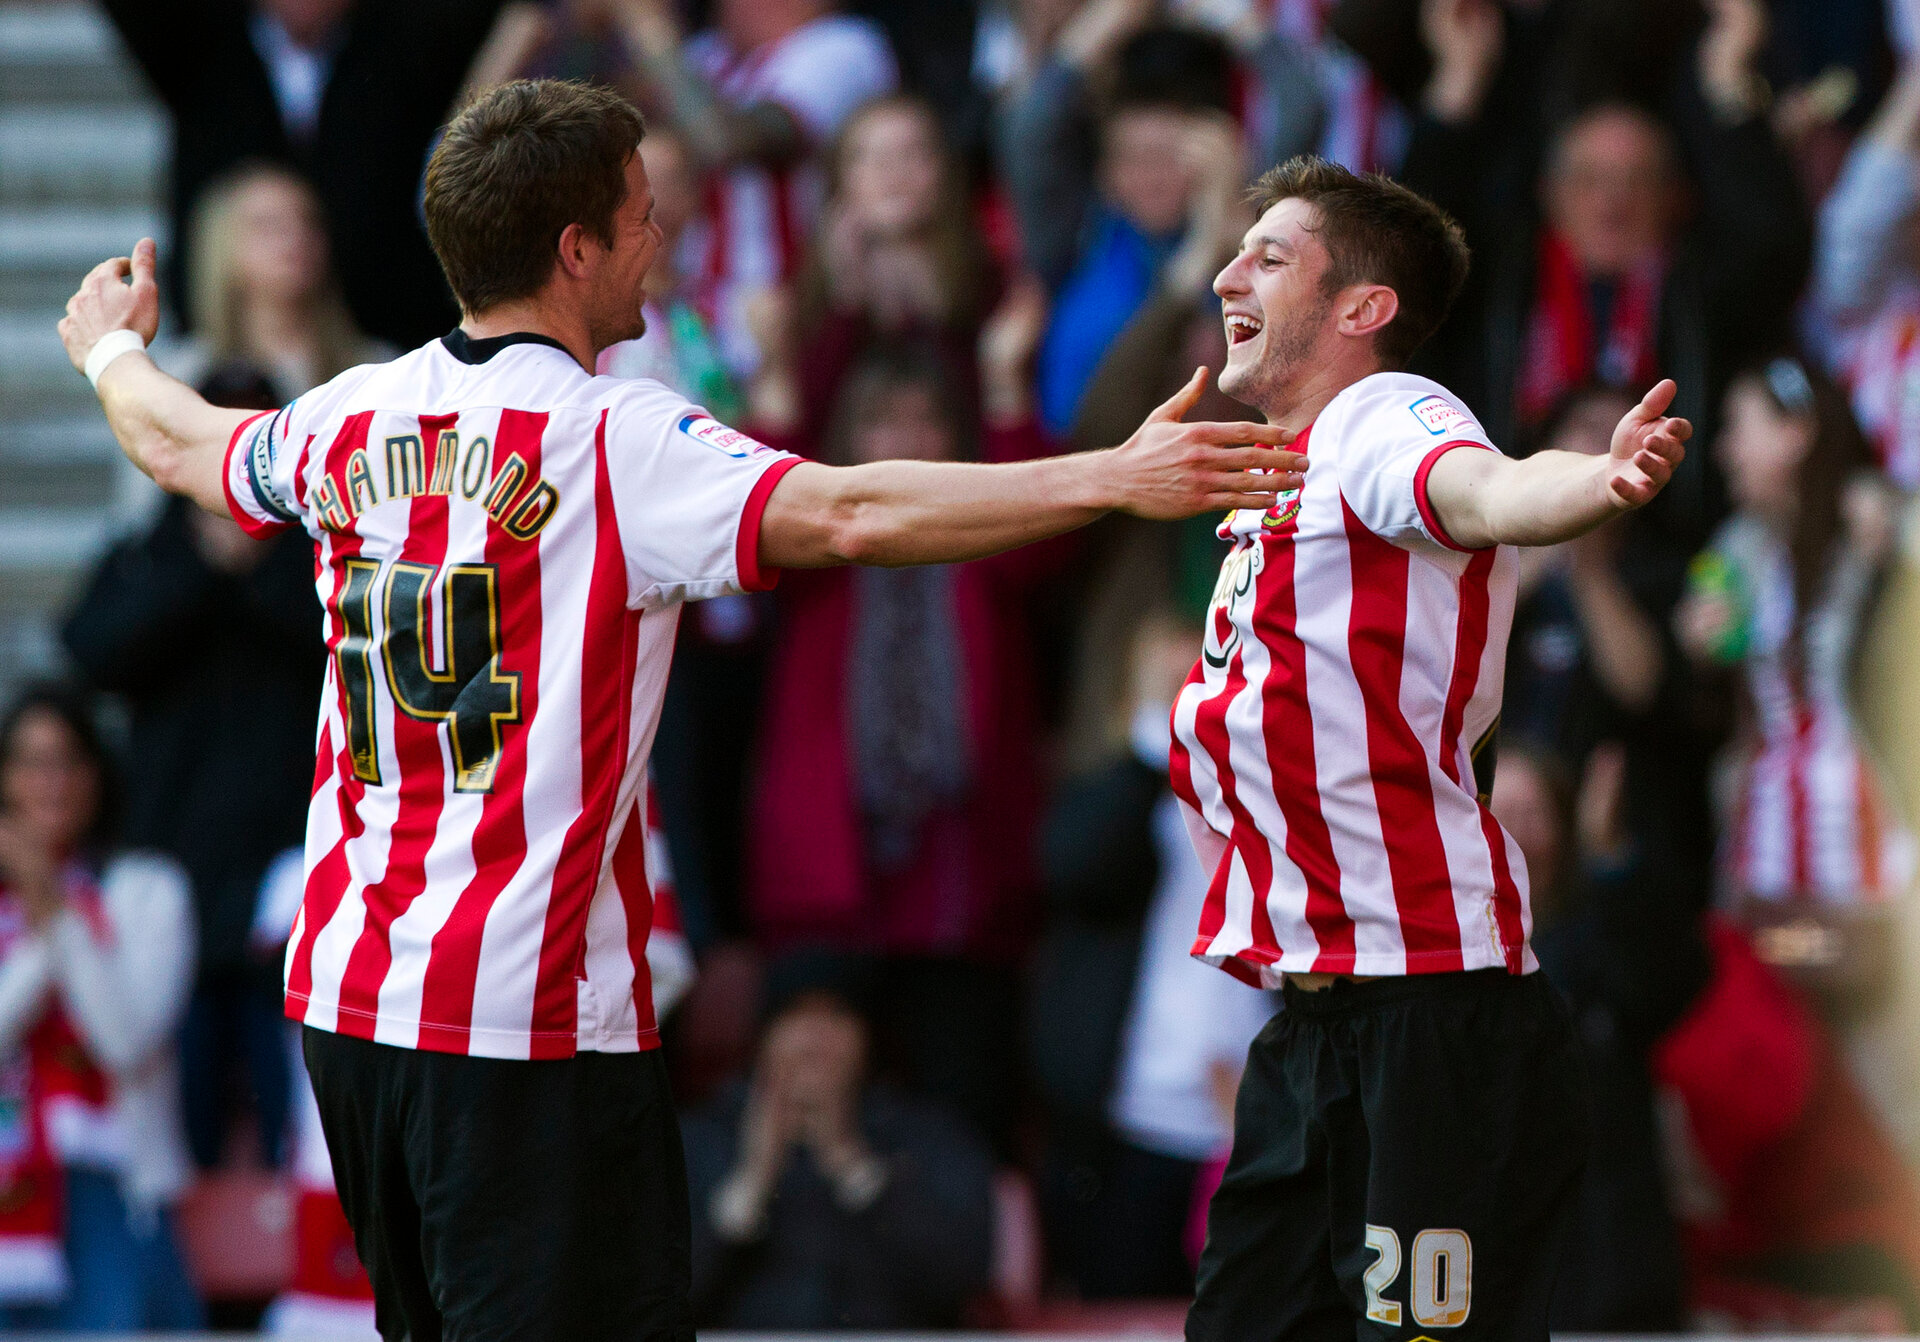 SOUTHAMPTON, ENGLAND - MARCH 10: Adam Lallana of Southampton (R) celebrates with Dean Hammond of Southampton (L) after scoring his team's second goal of the game during the npower Championship match between Southampton and Barnsley at St. Mary's Stadium on March 10, 2012 in Southampton, England.  (Photo by Ben Hoskins/Getty Images)